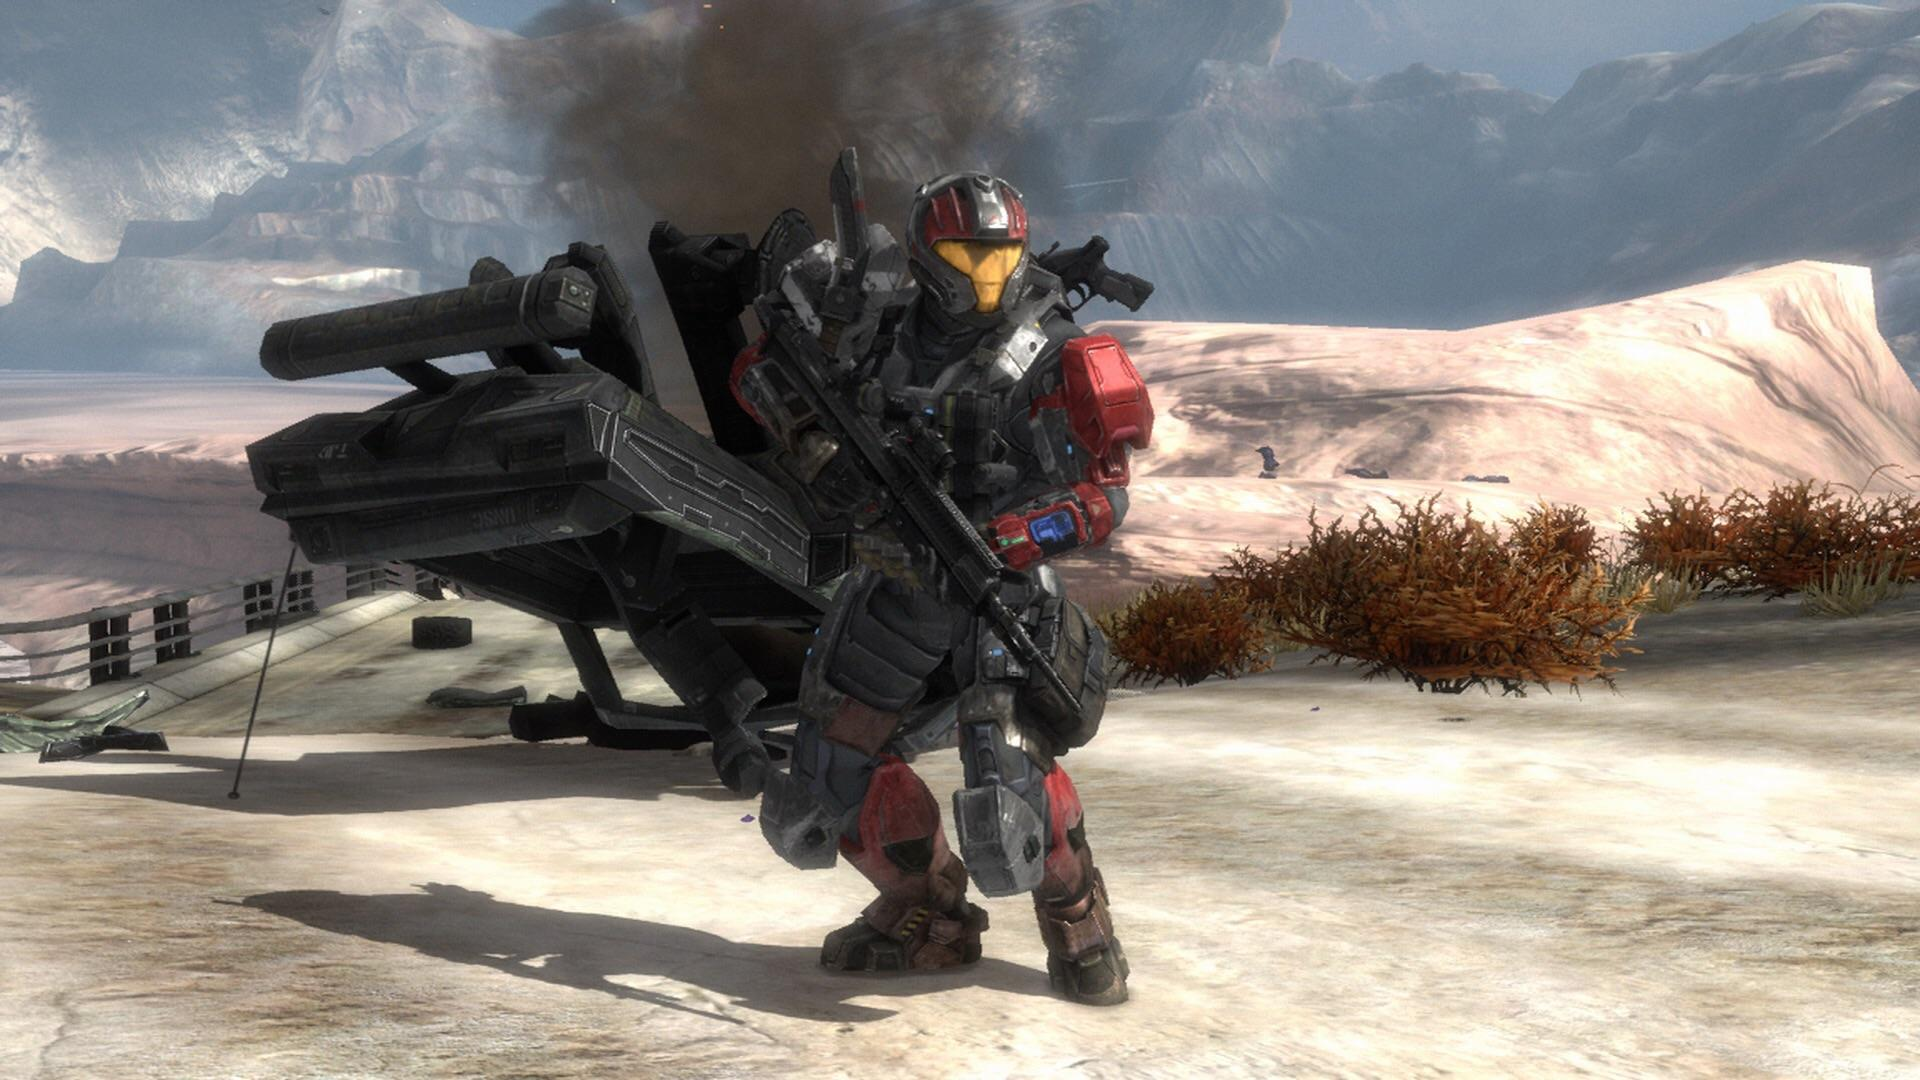 Halo Reach Dlc Armor Will All Dlc Be Included With Mcc